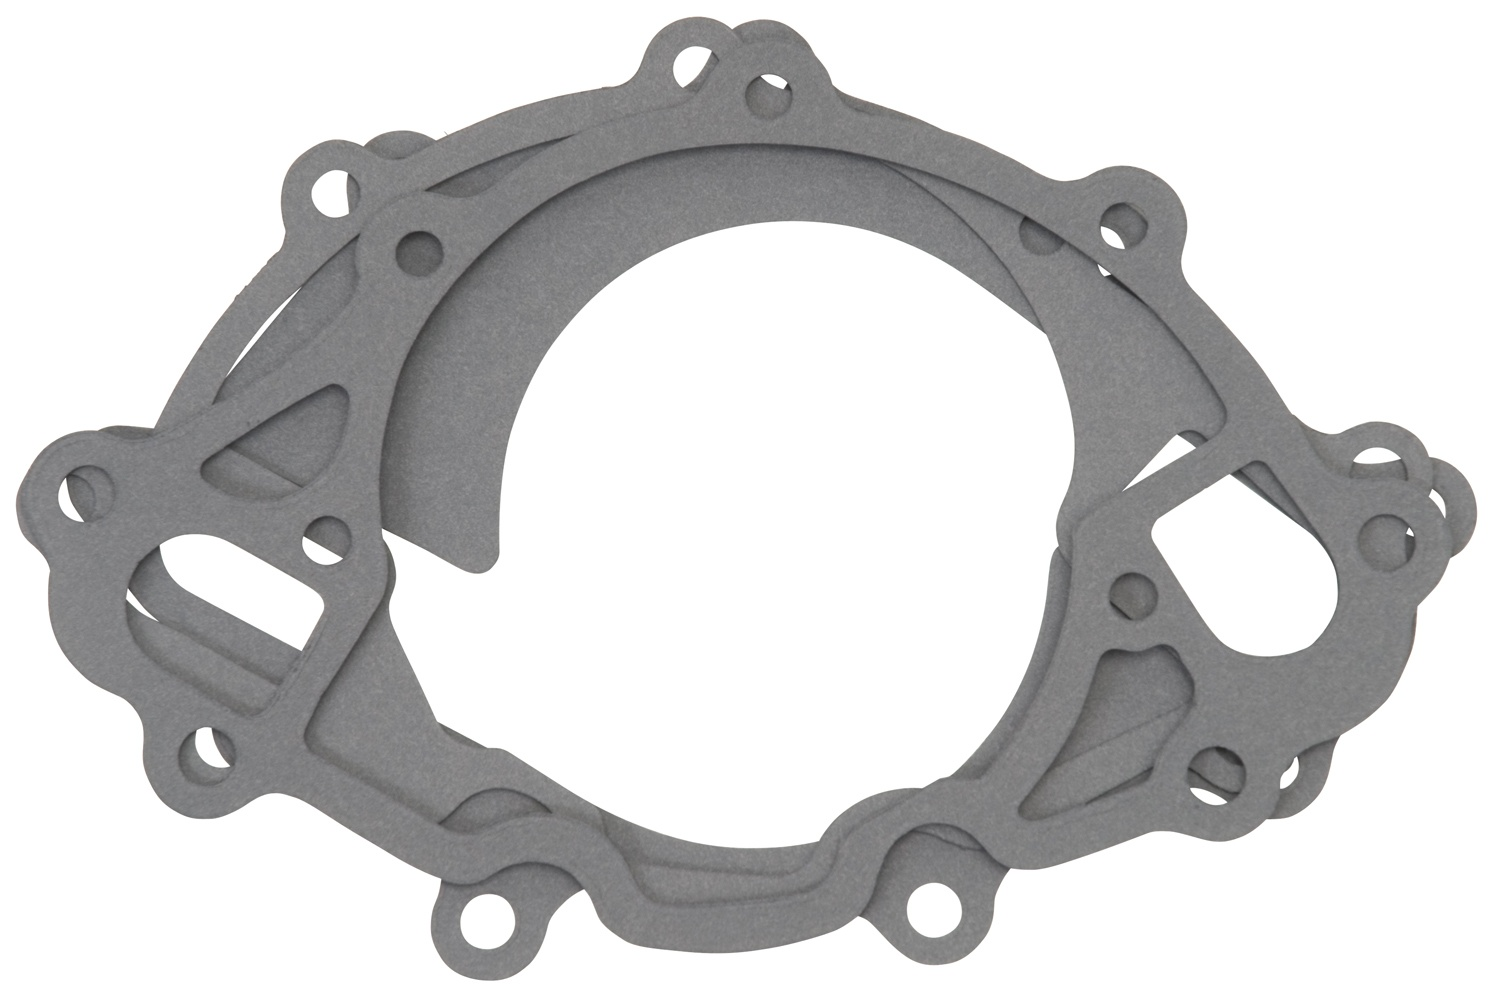 Edelbrock 7254 WP GASKET KIT 5.0 FORD